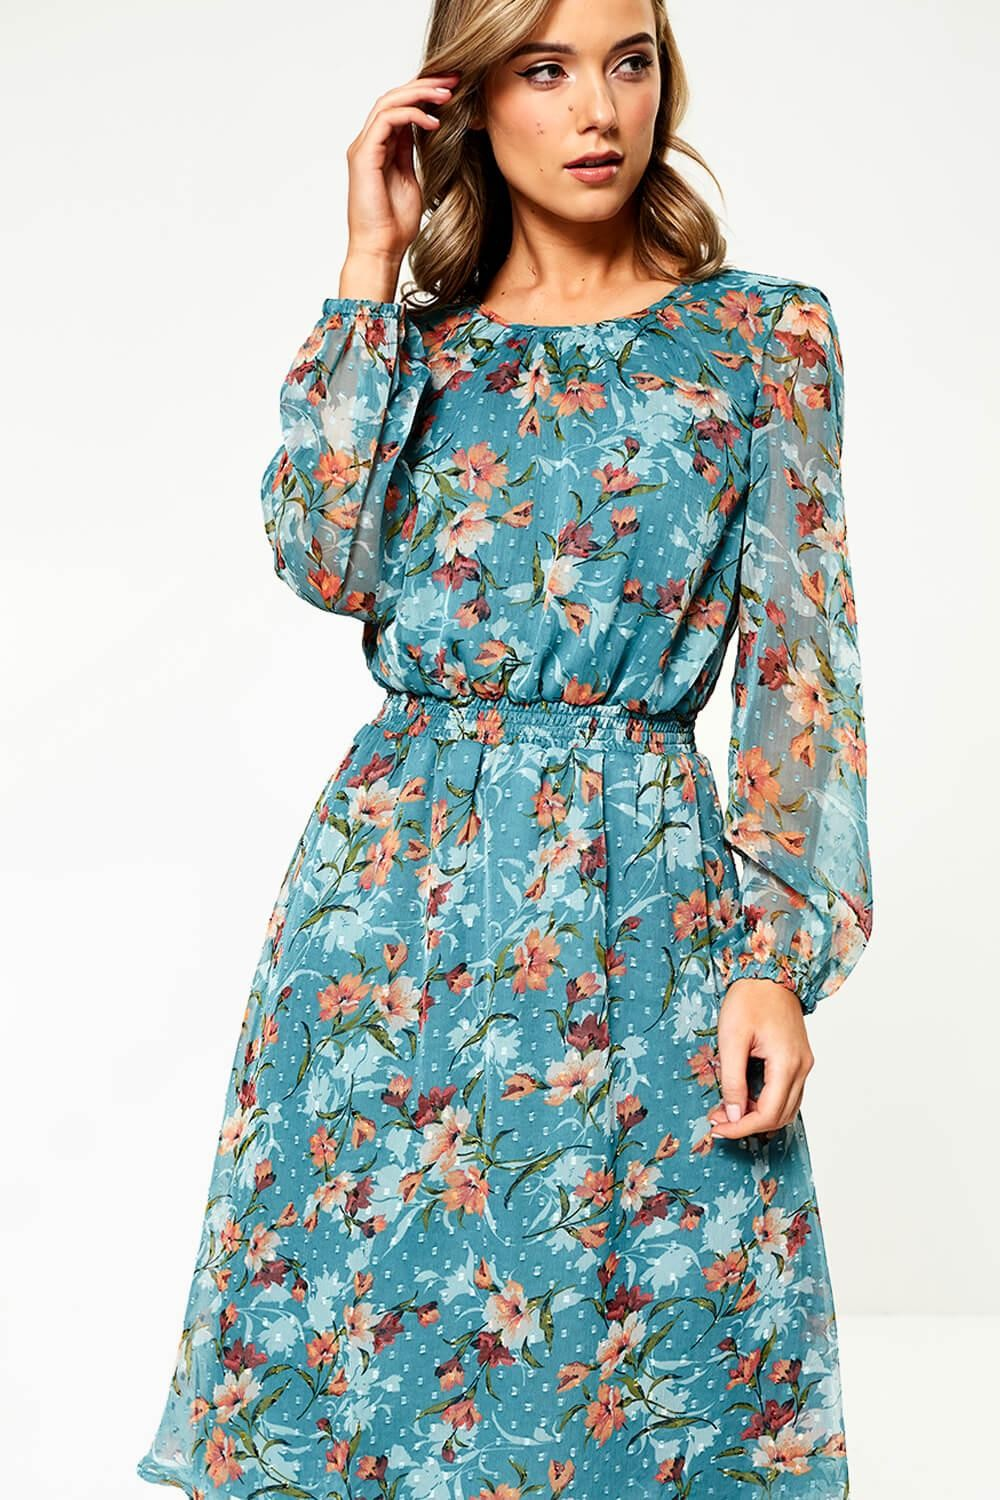 chiffon_overlay_dress_in_teal_floral_print-5